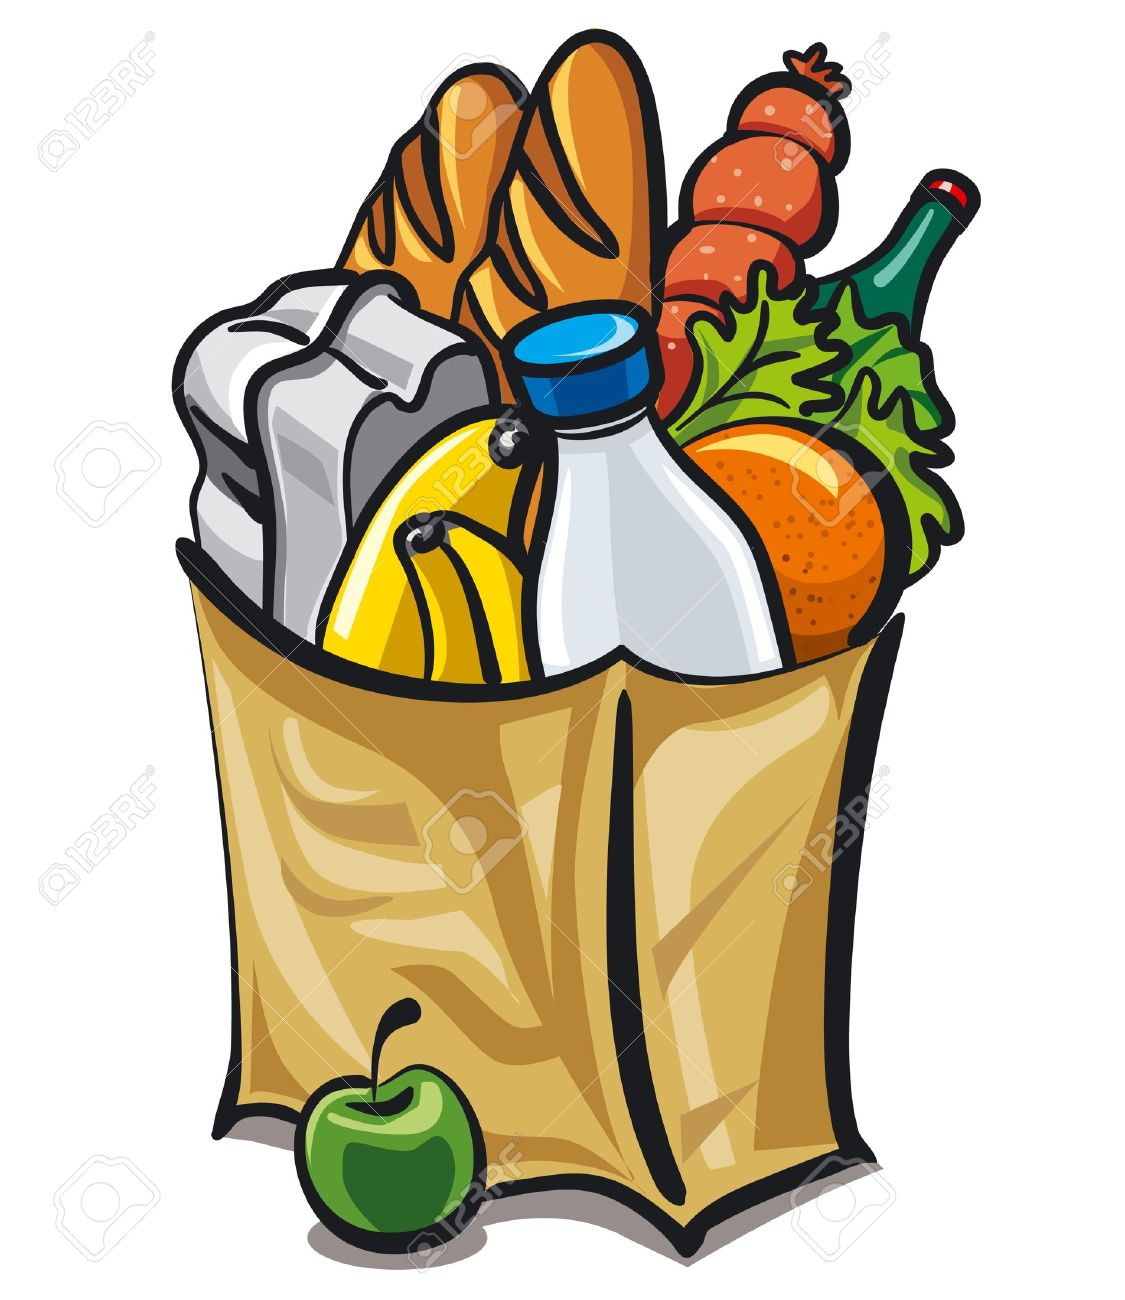 Paper Bag With Food Royalty Free Cliparts Vectors And Stock Illustration Image 17696518